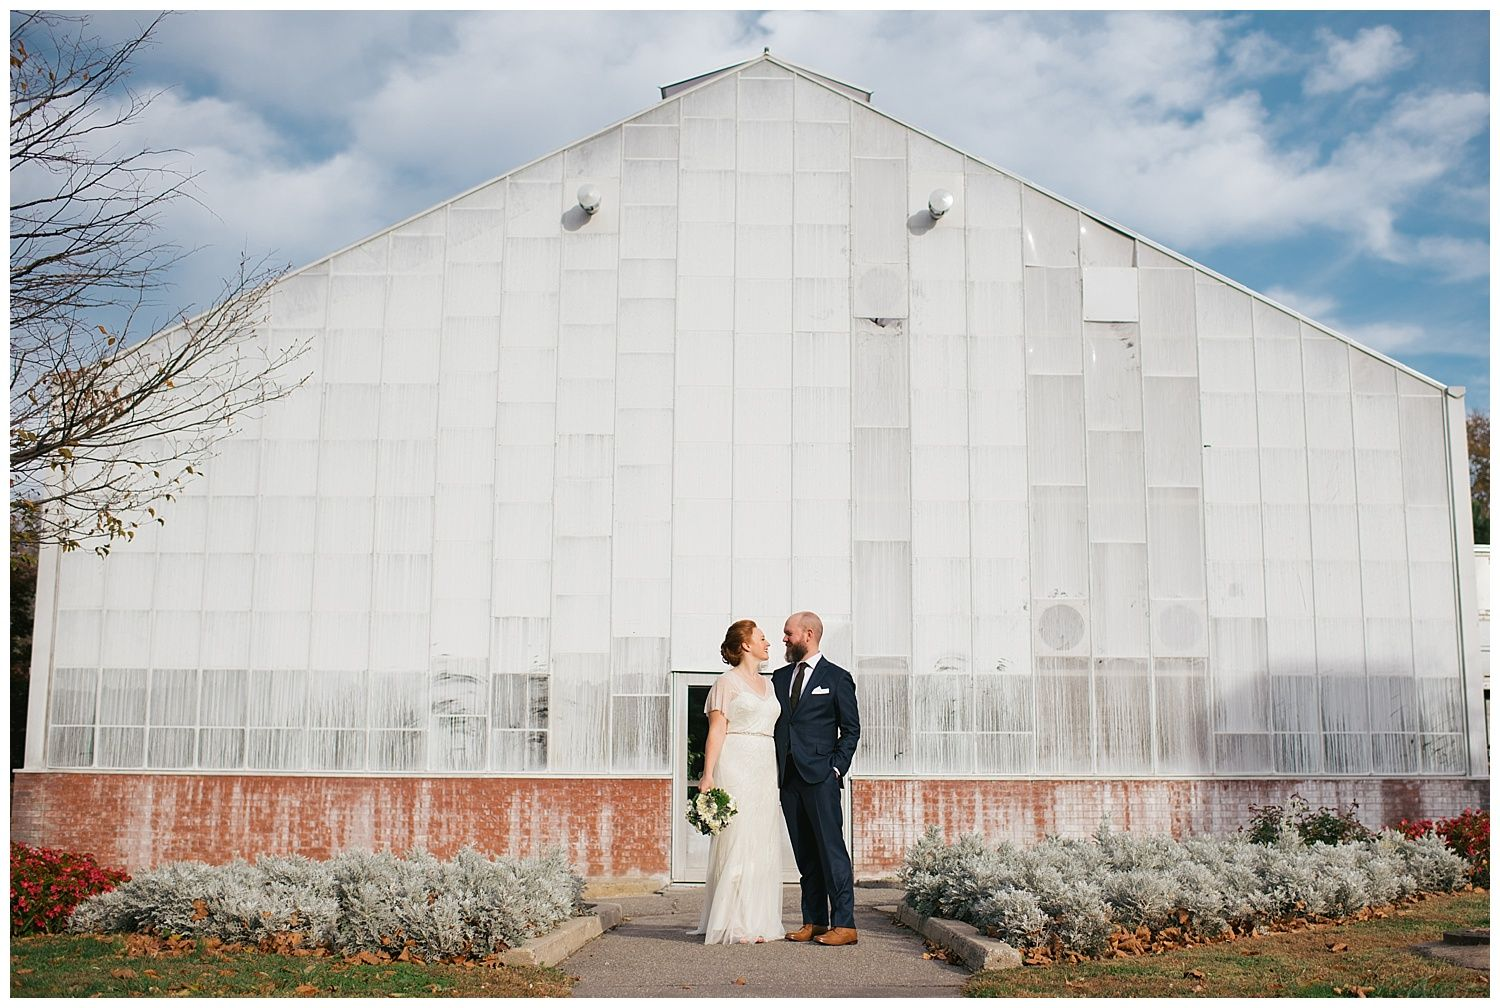 Chic Fall Wedding at The Fairmount Horticulture Center • Jessica ...